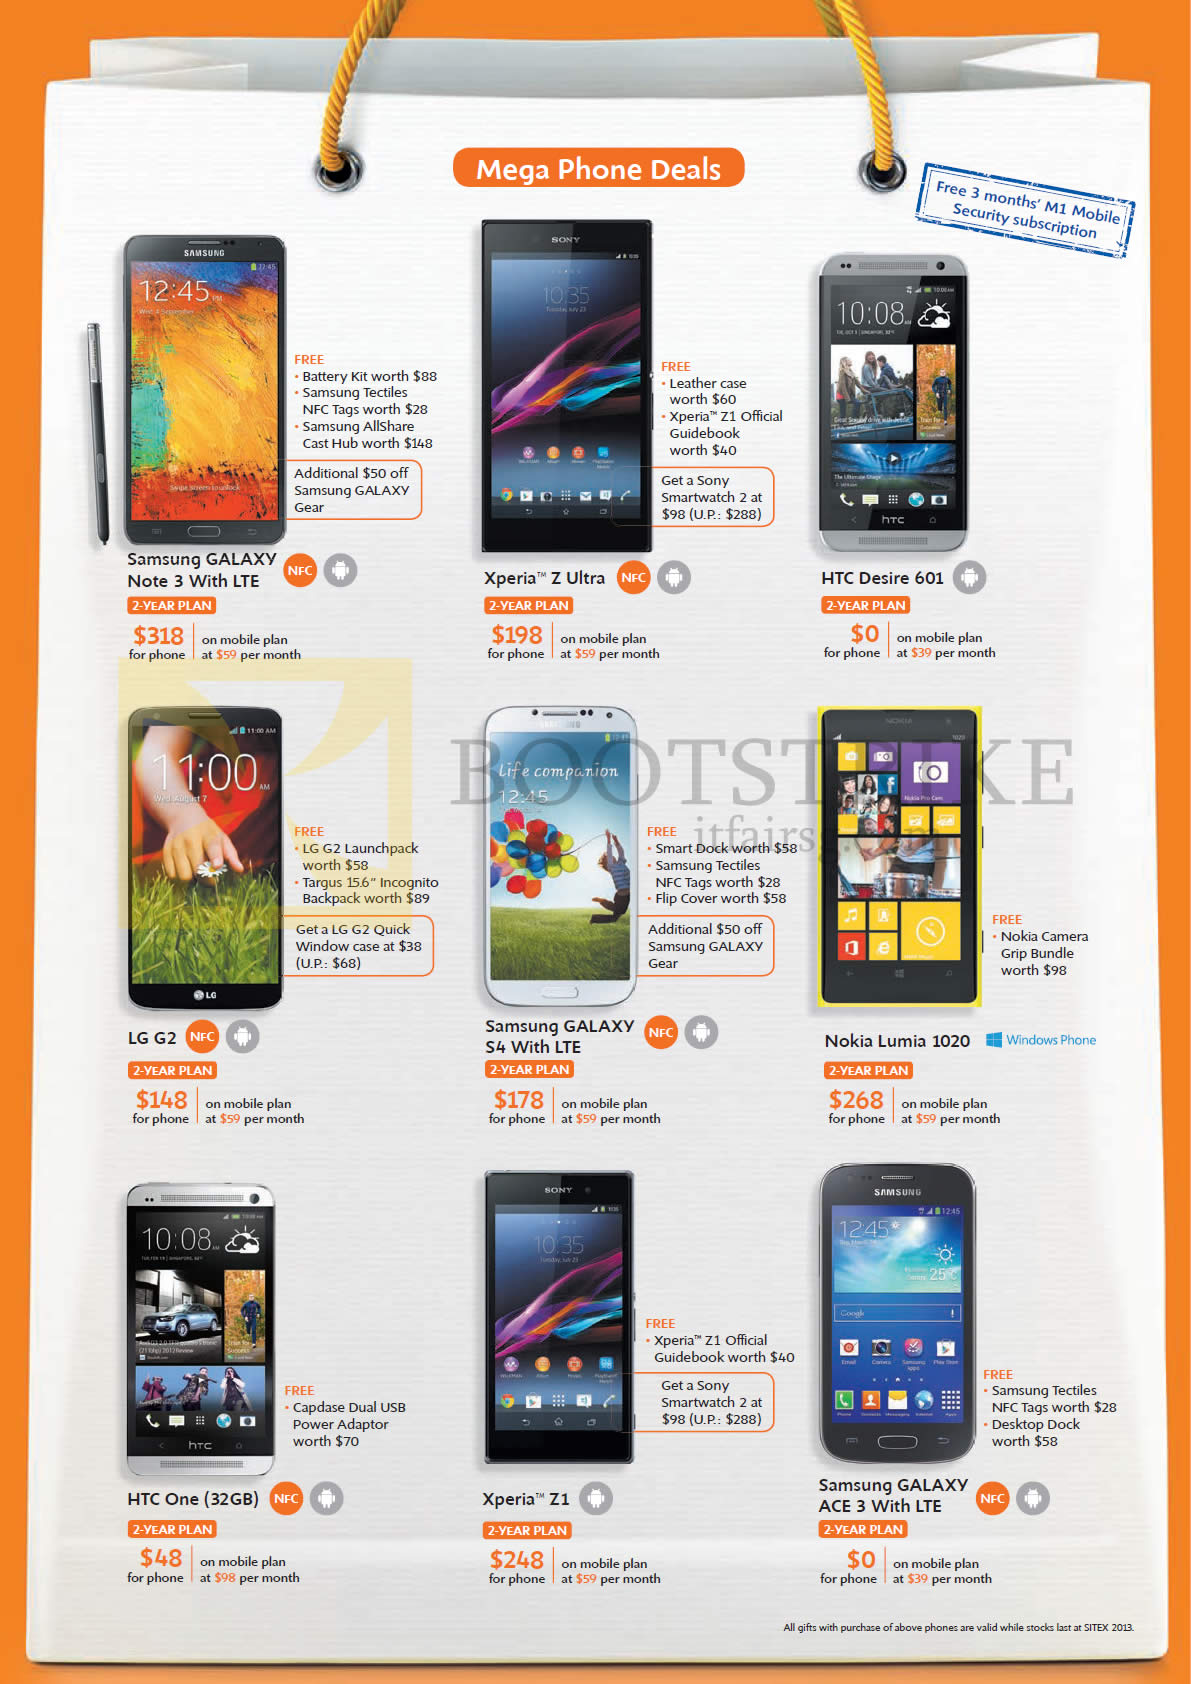 SITEX 2013 Price List Image Brochure Of M1 Mobile Samsung Galaxy Note 3 S4